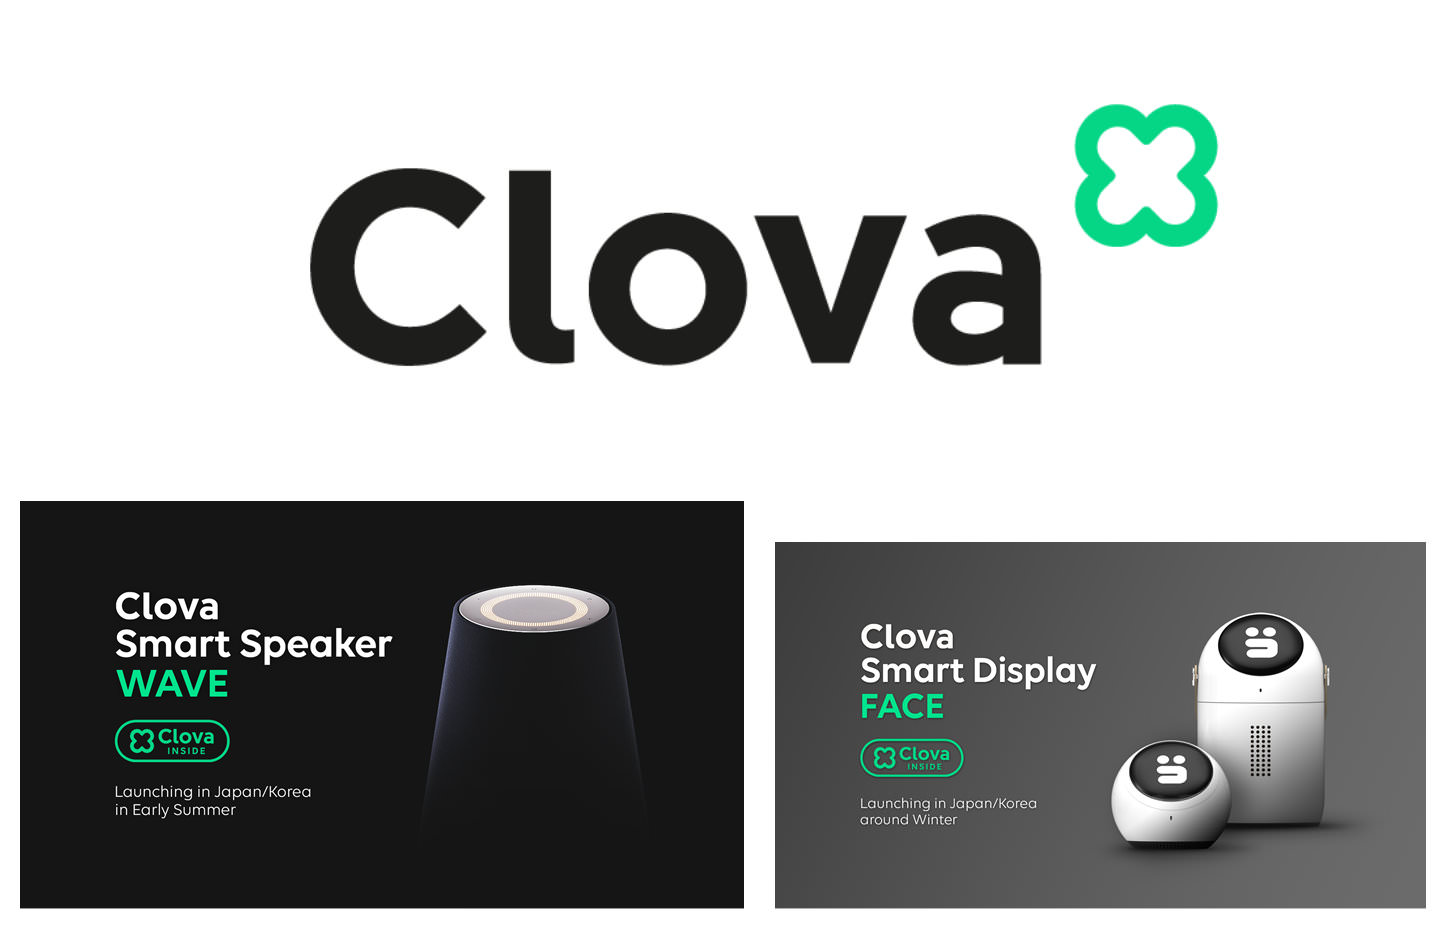 Clova SmartSpeaker And Display